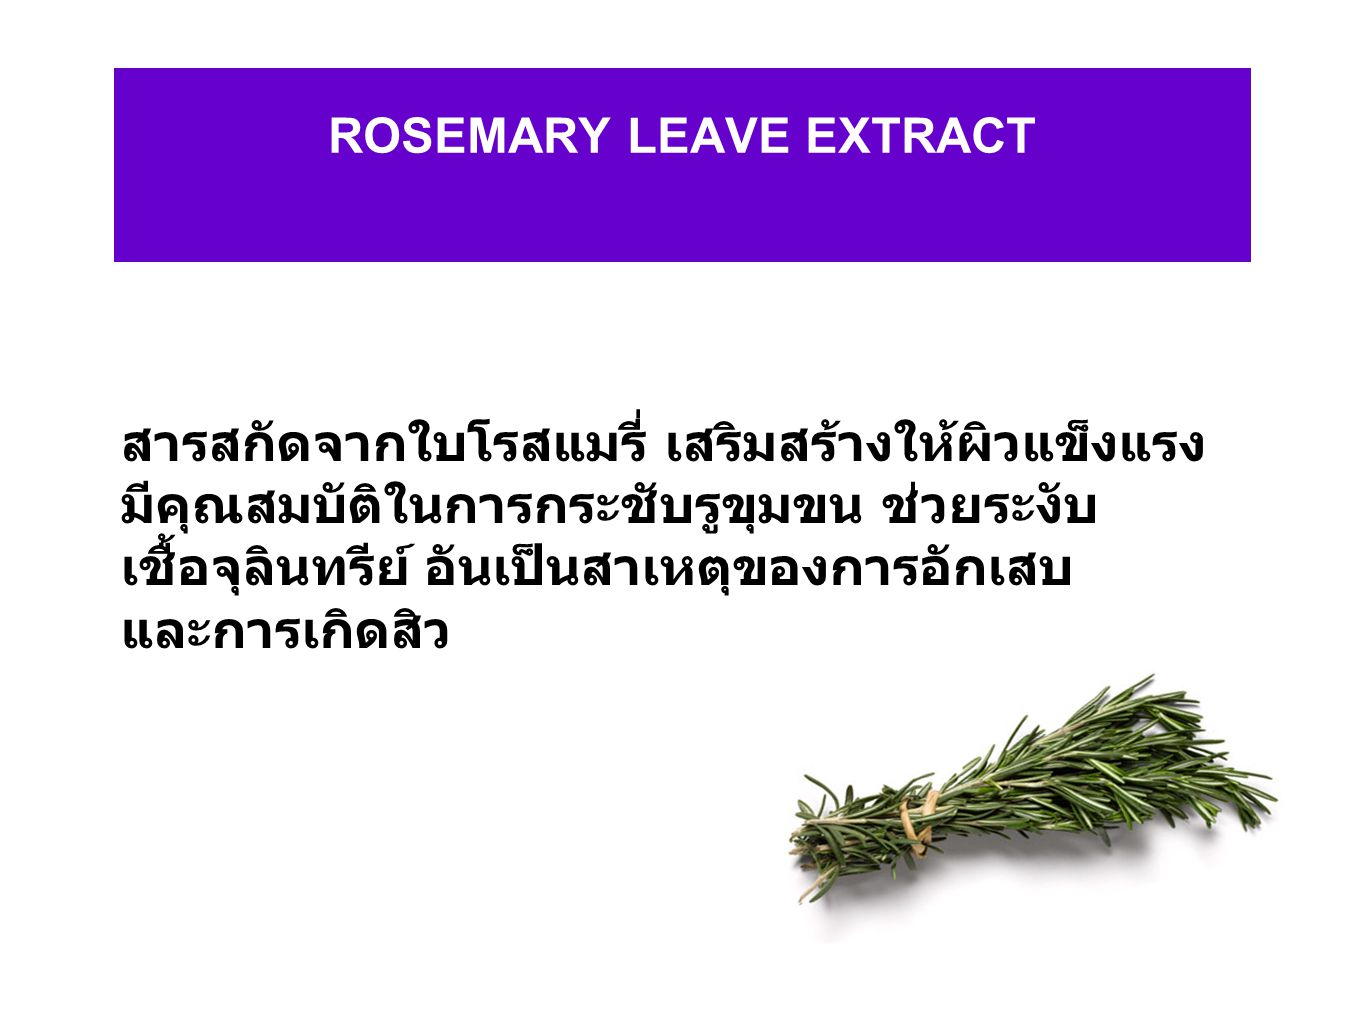 ROSEMARY LEAVE EXTRACT